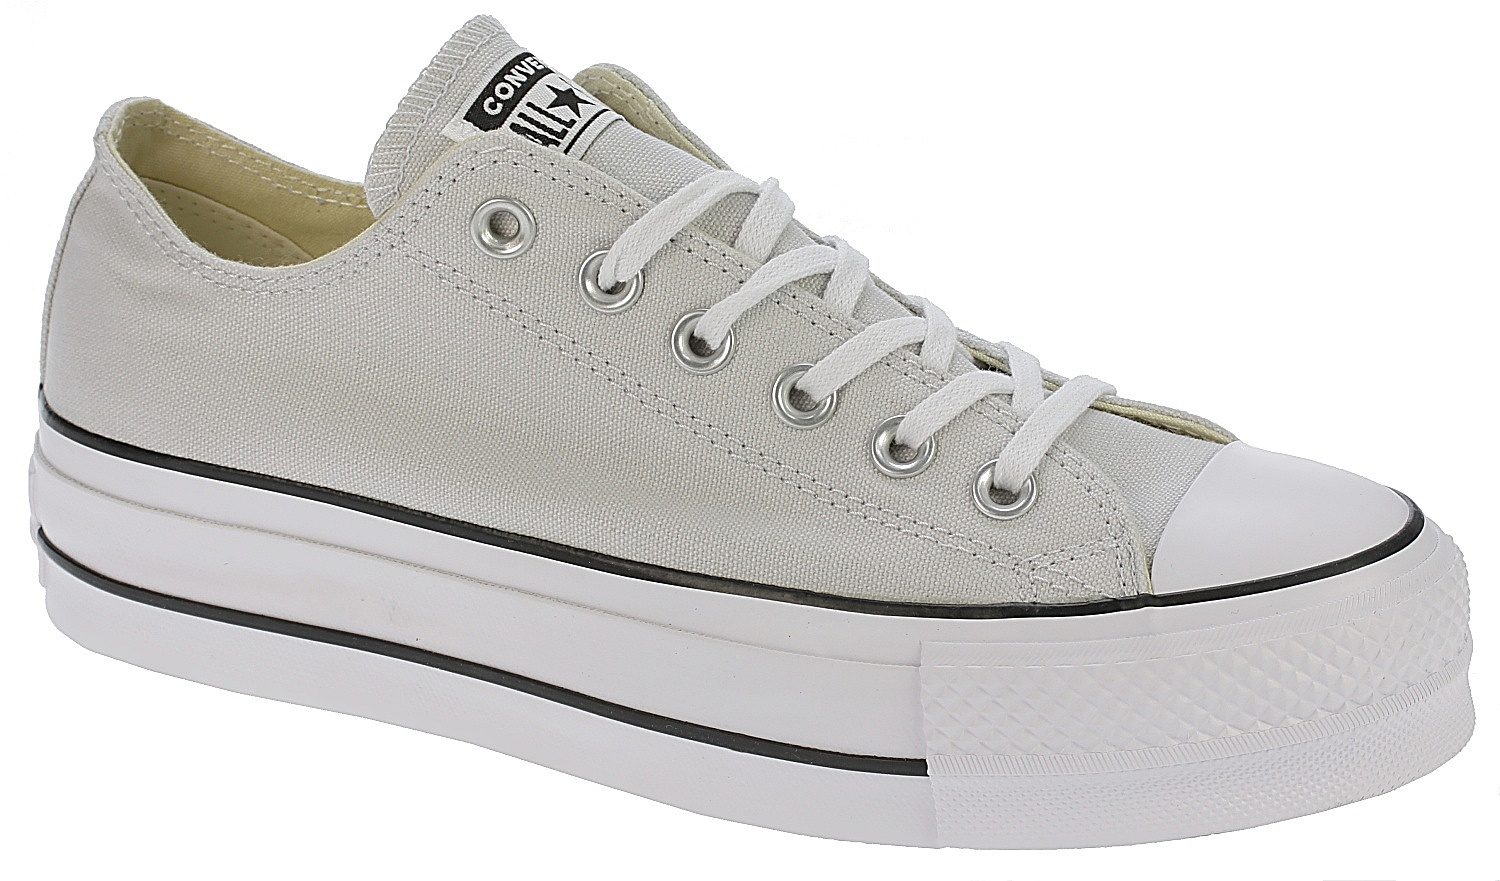 47ffd76c2f64 boty Converse Chuck Taylor All Star Lift OX - 560686 Mouse White Black -  Snowboard shop